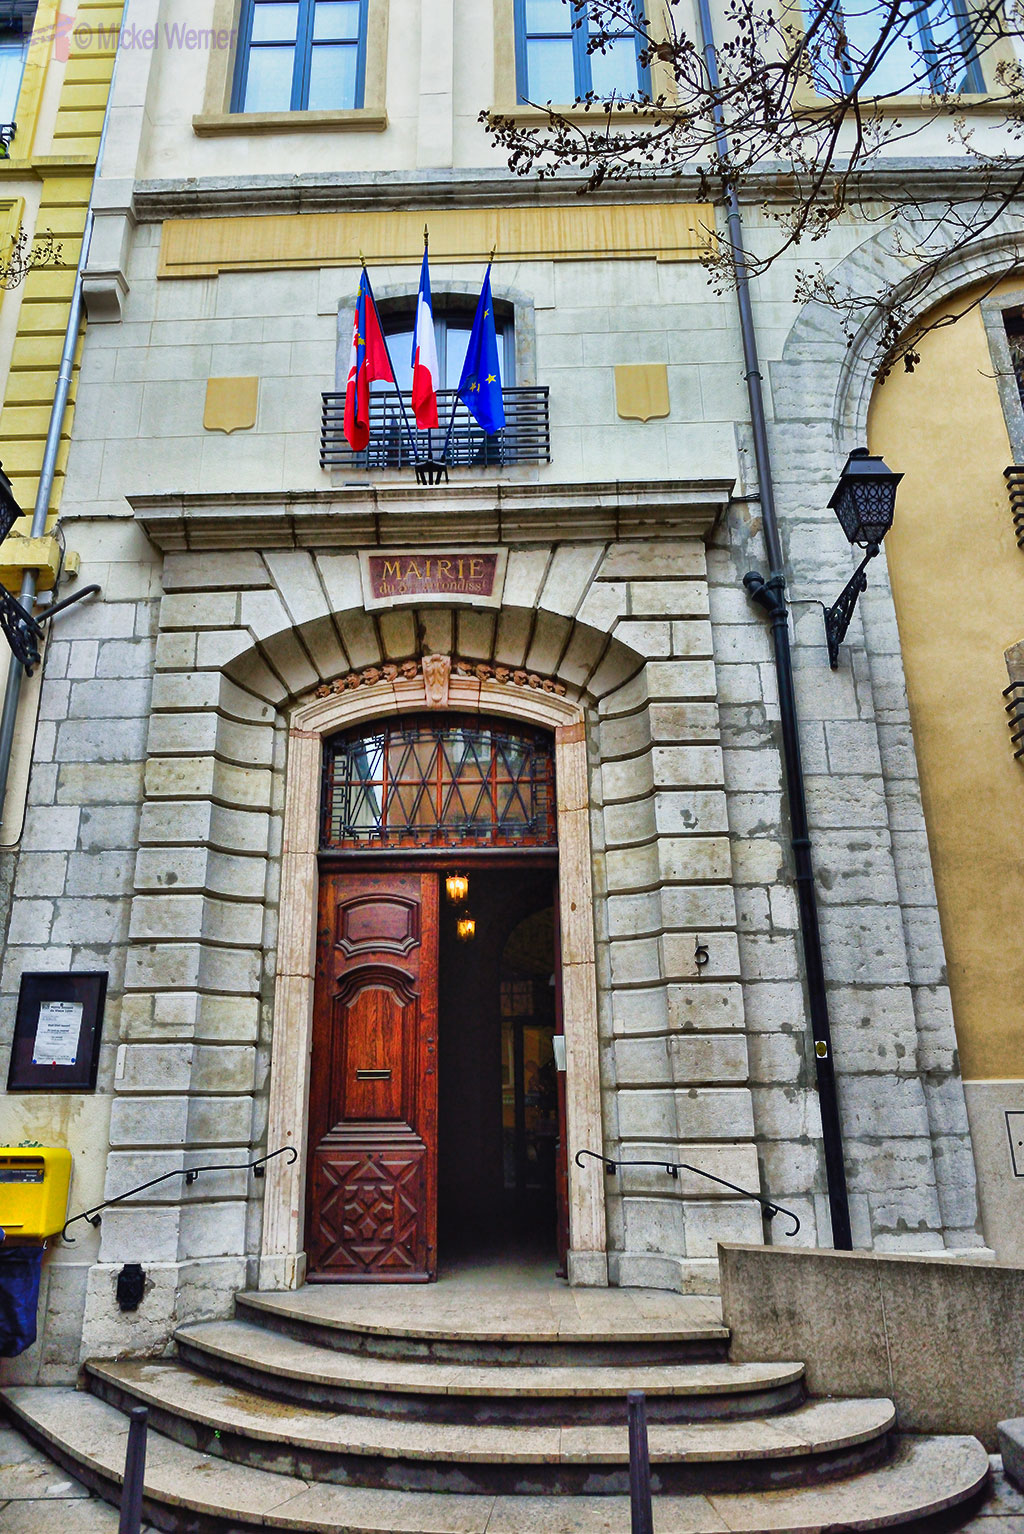 Part of the Mairie of the 5th arrondissement of Lyon